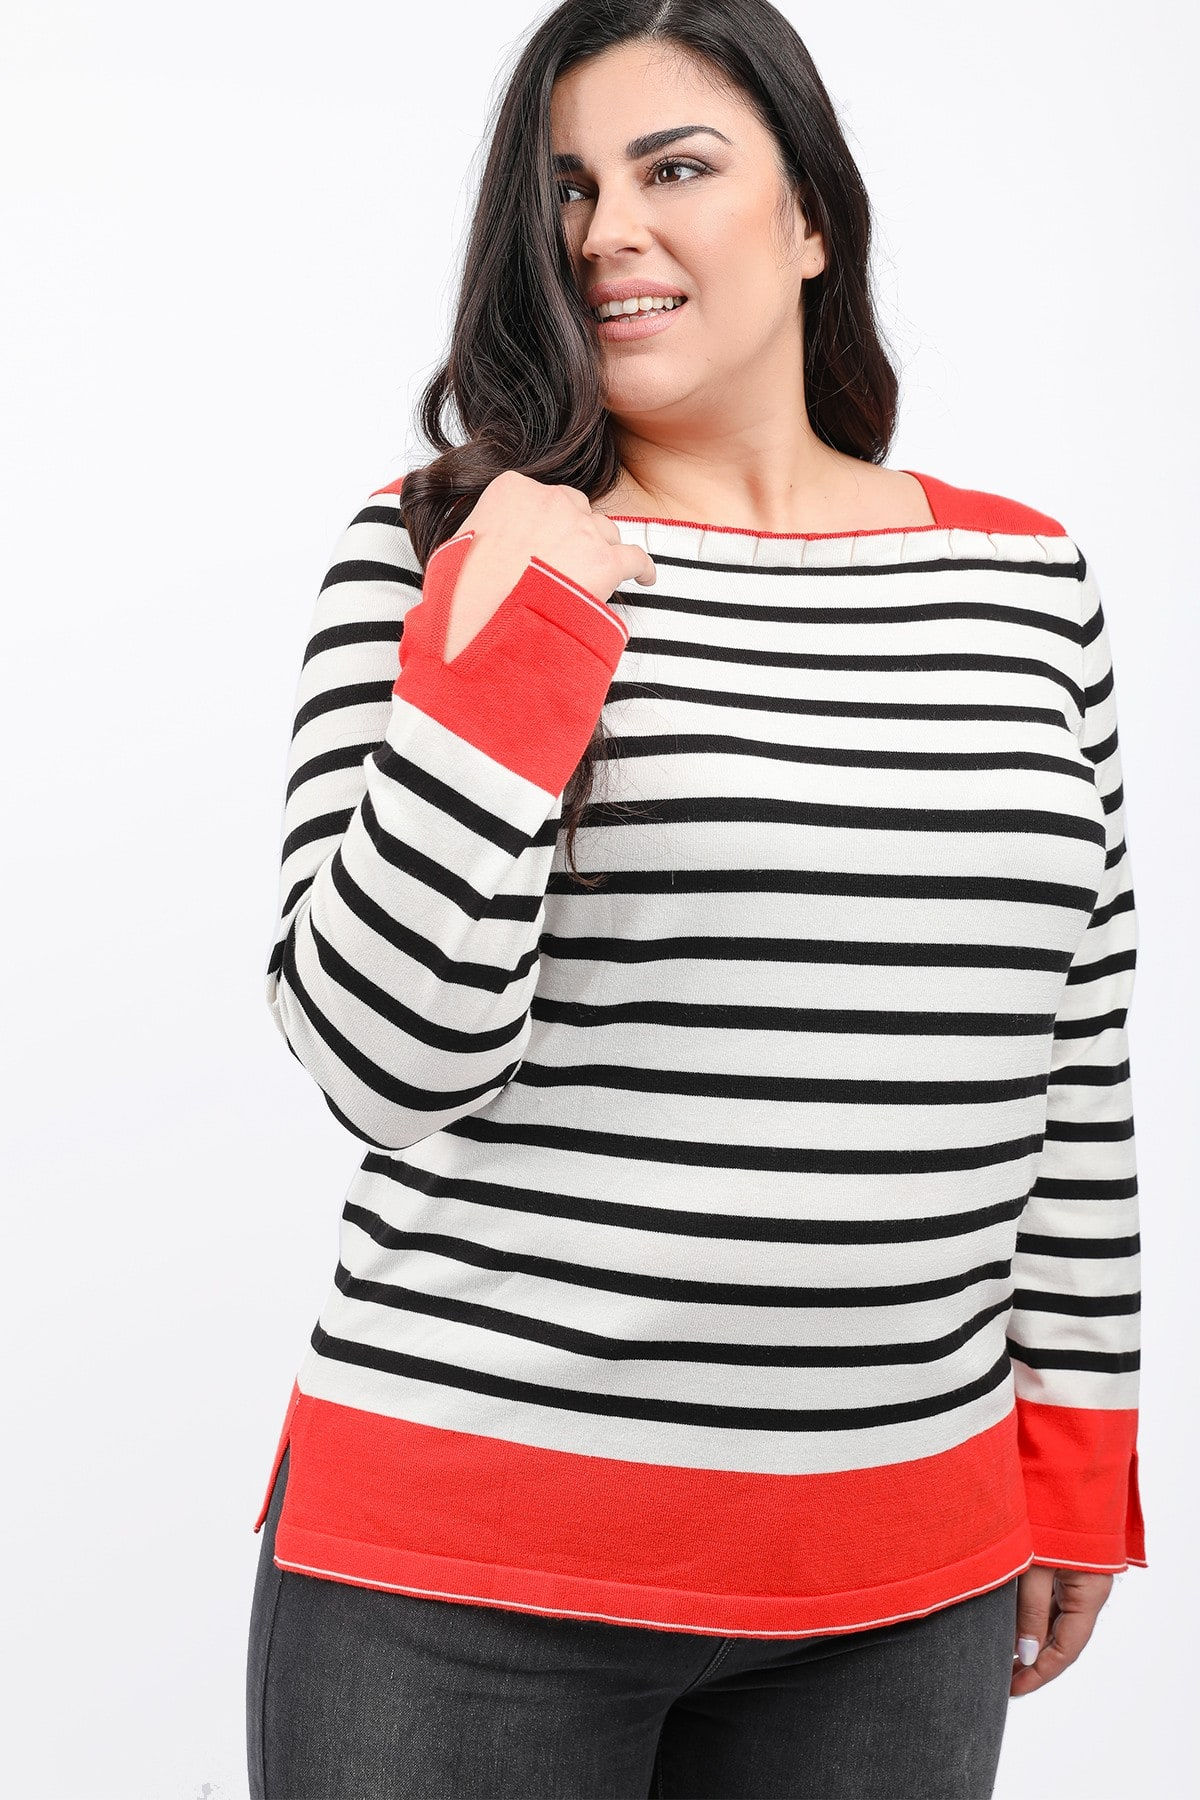 Stripe knit blouse with ruffles on the neck